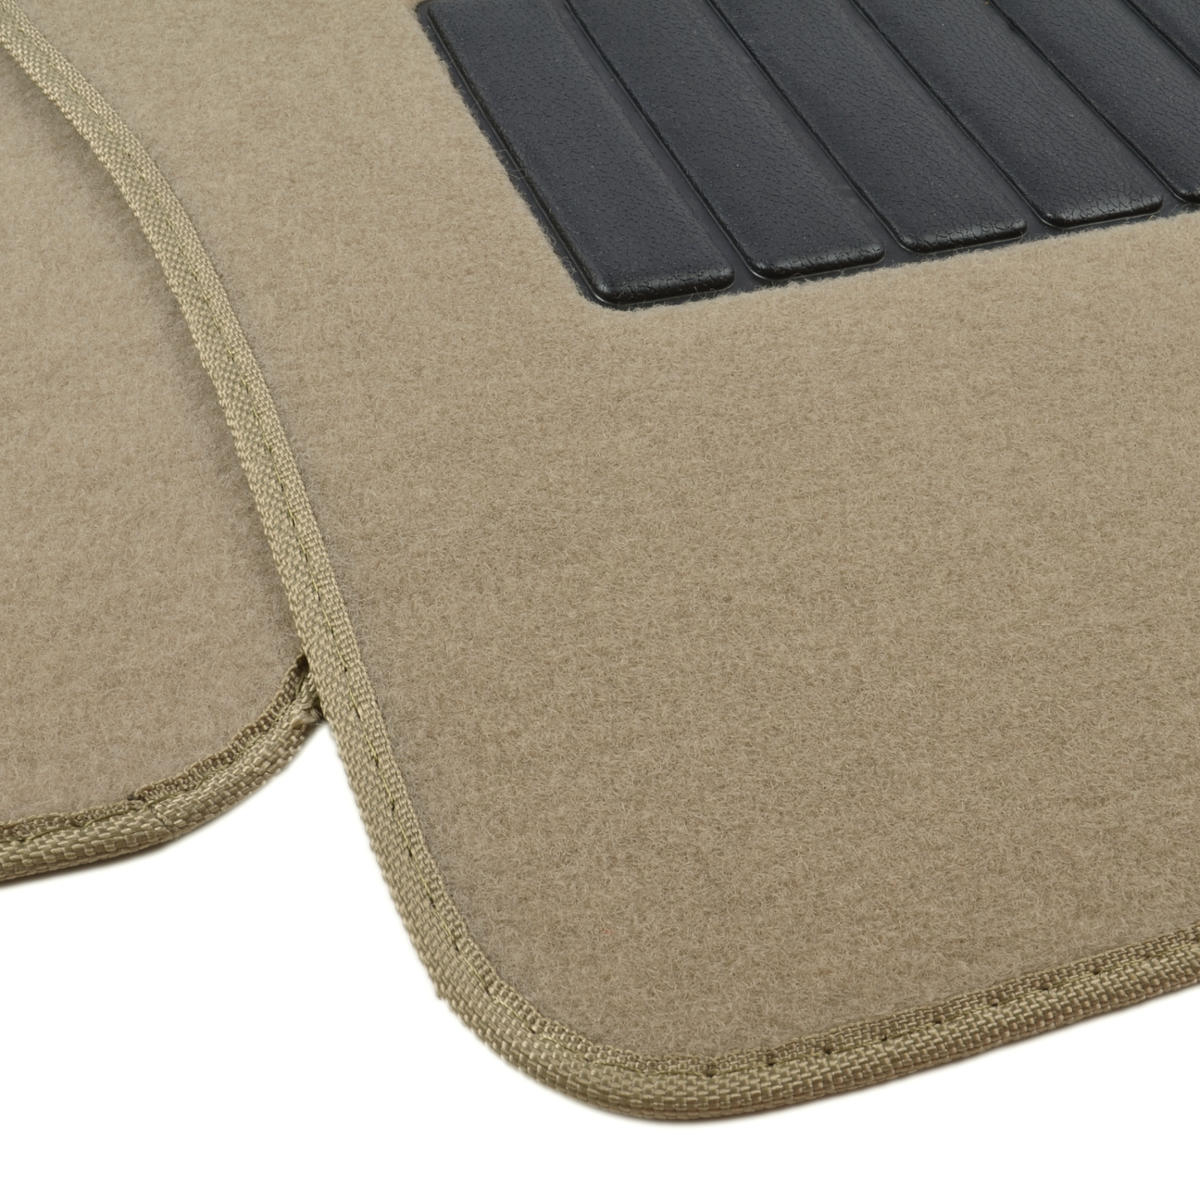 Auto Floor Mats For Car Classic Carpet W Heelpad Beige